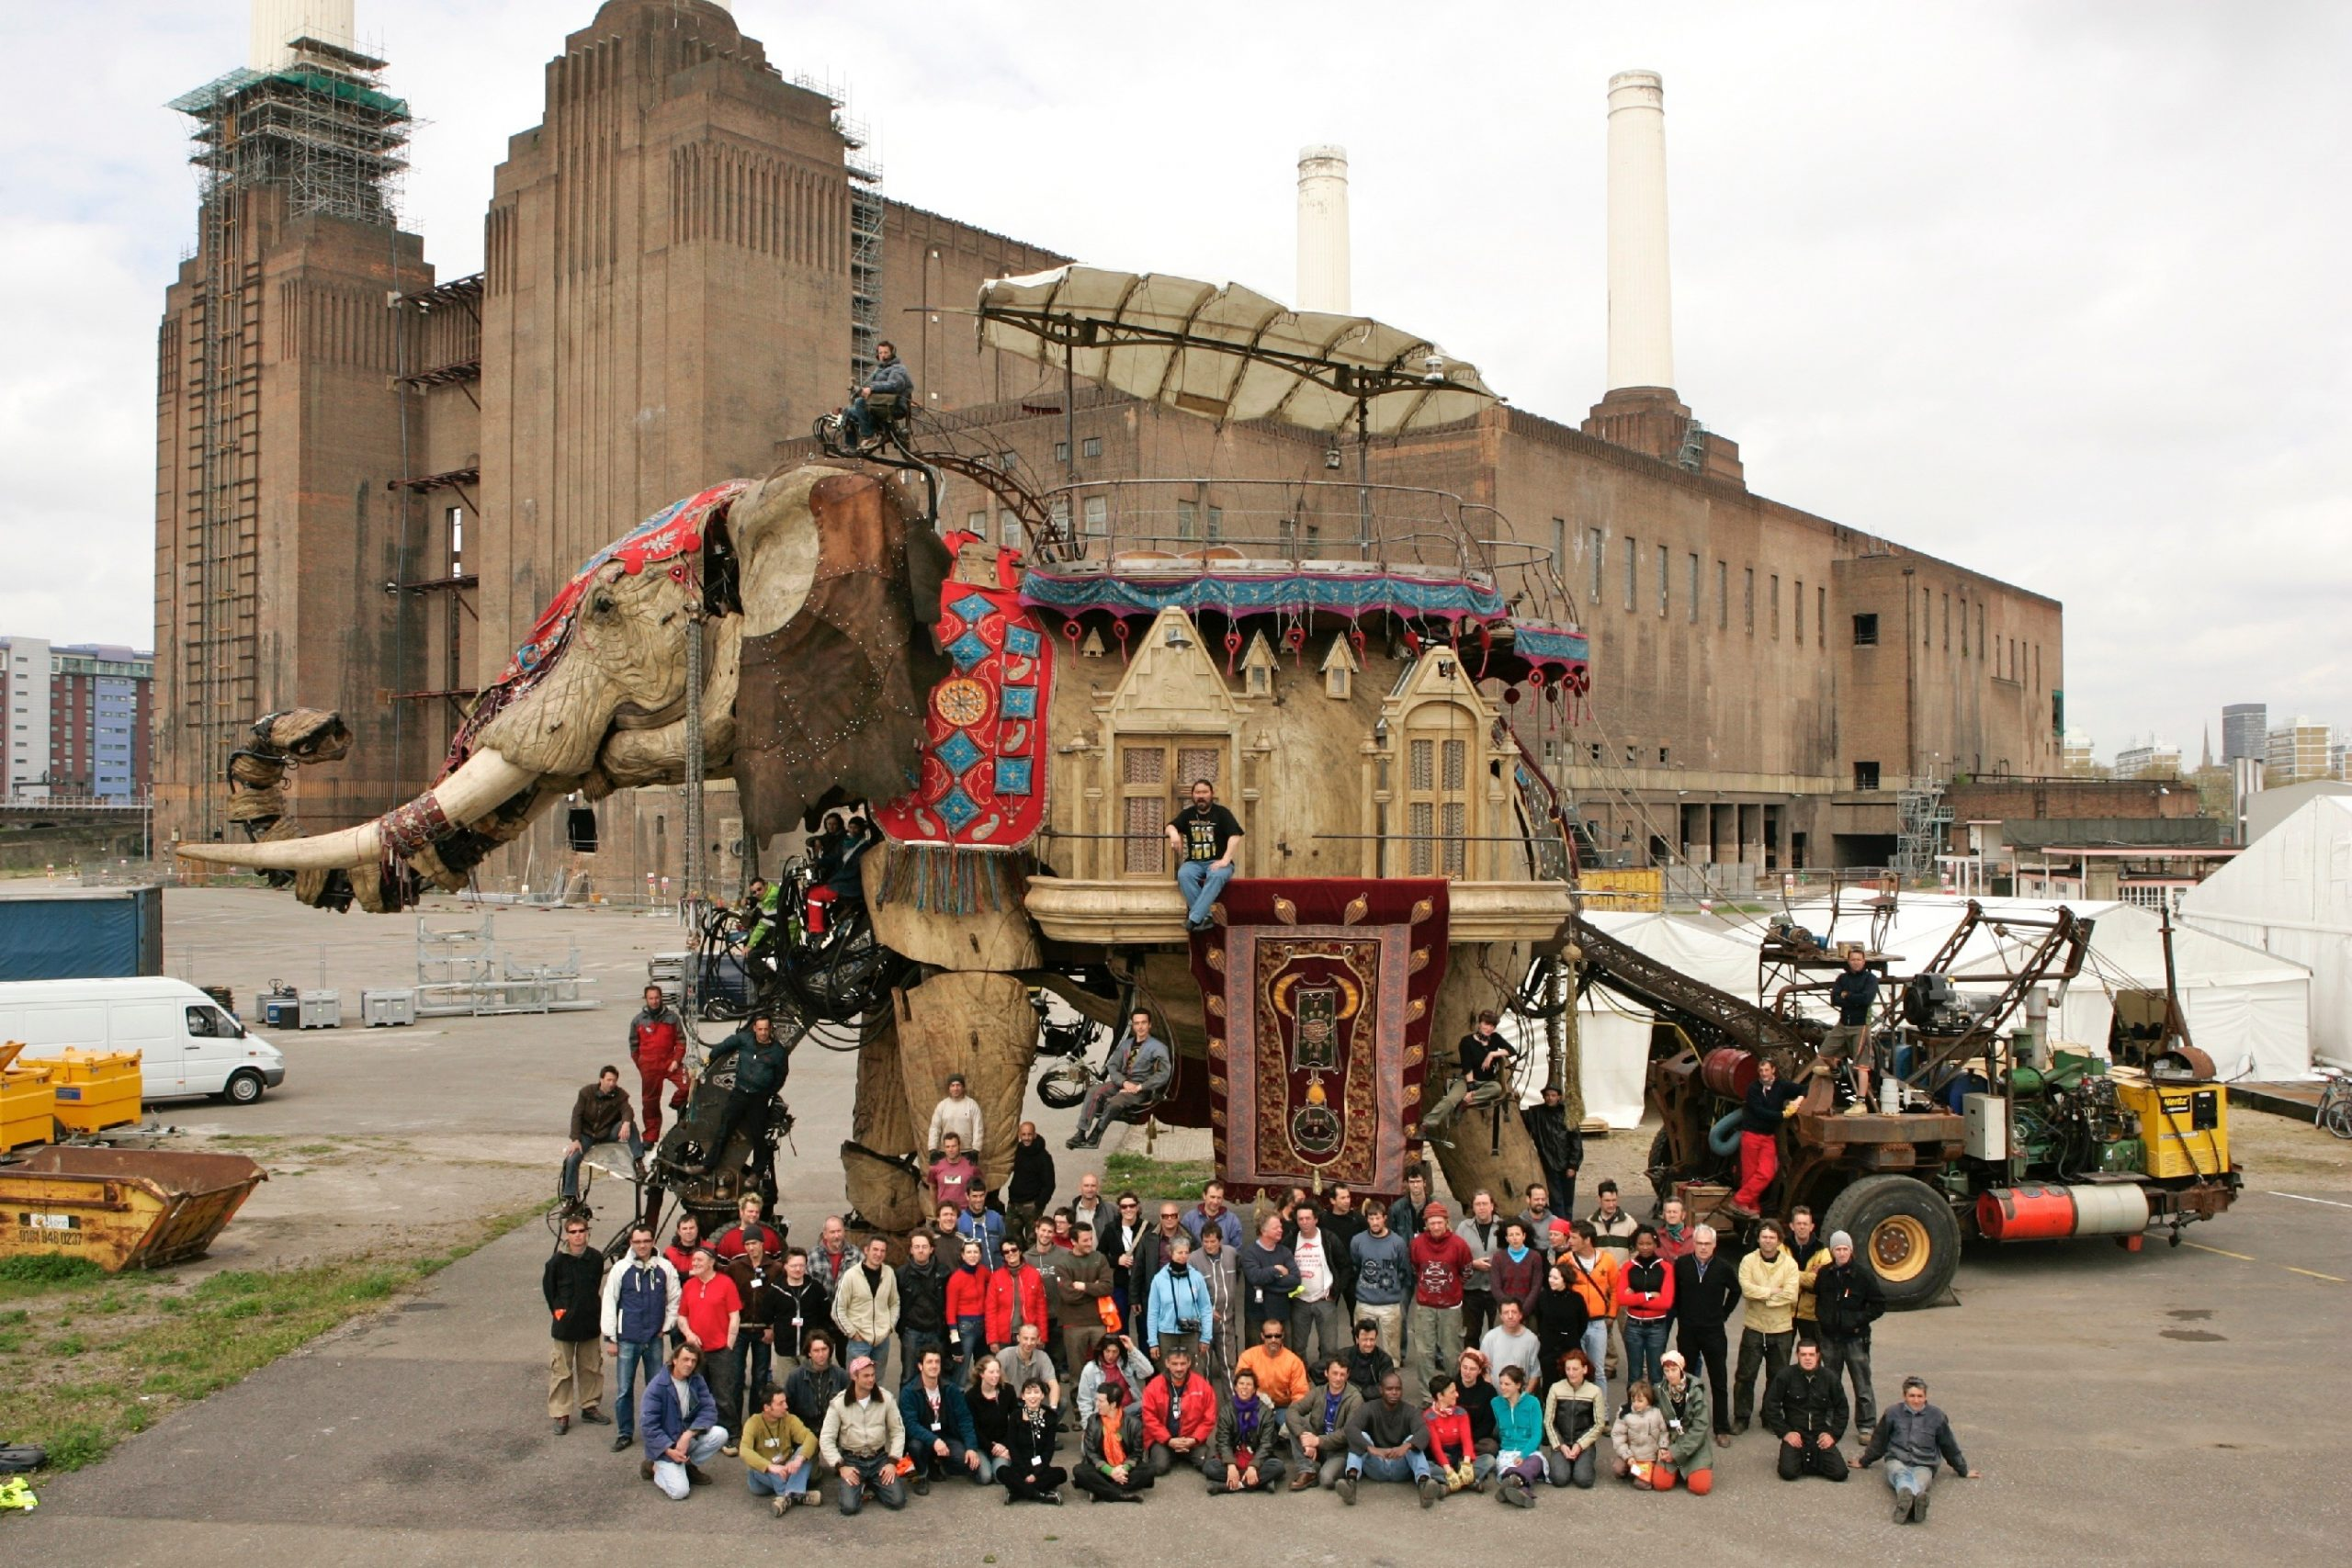 Royal de Luxe team posing with the elephant